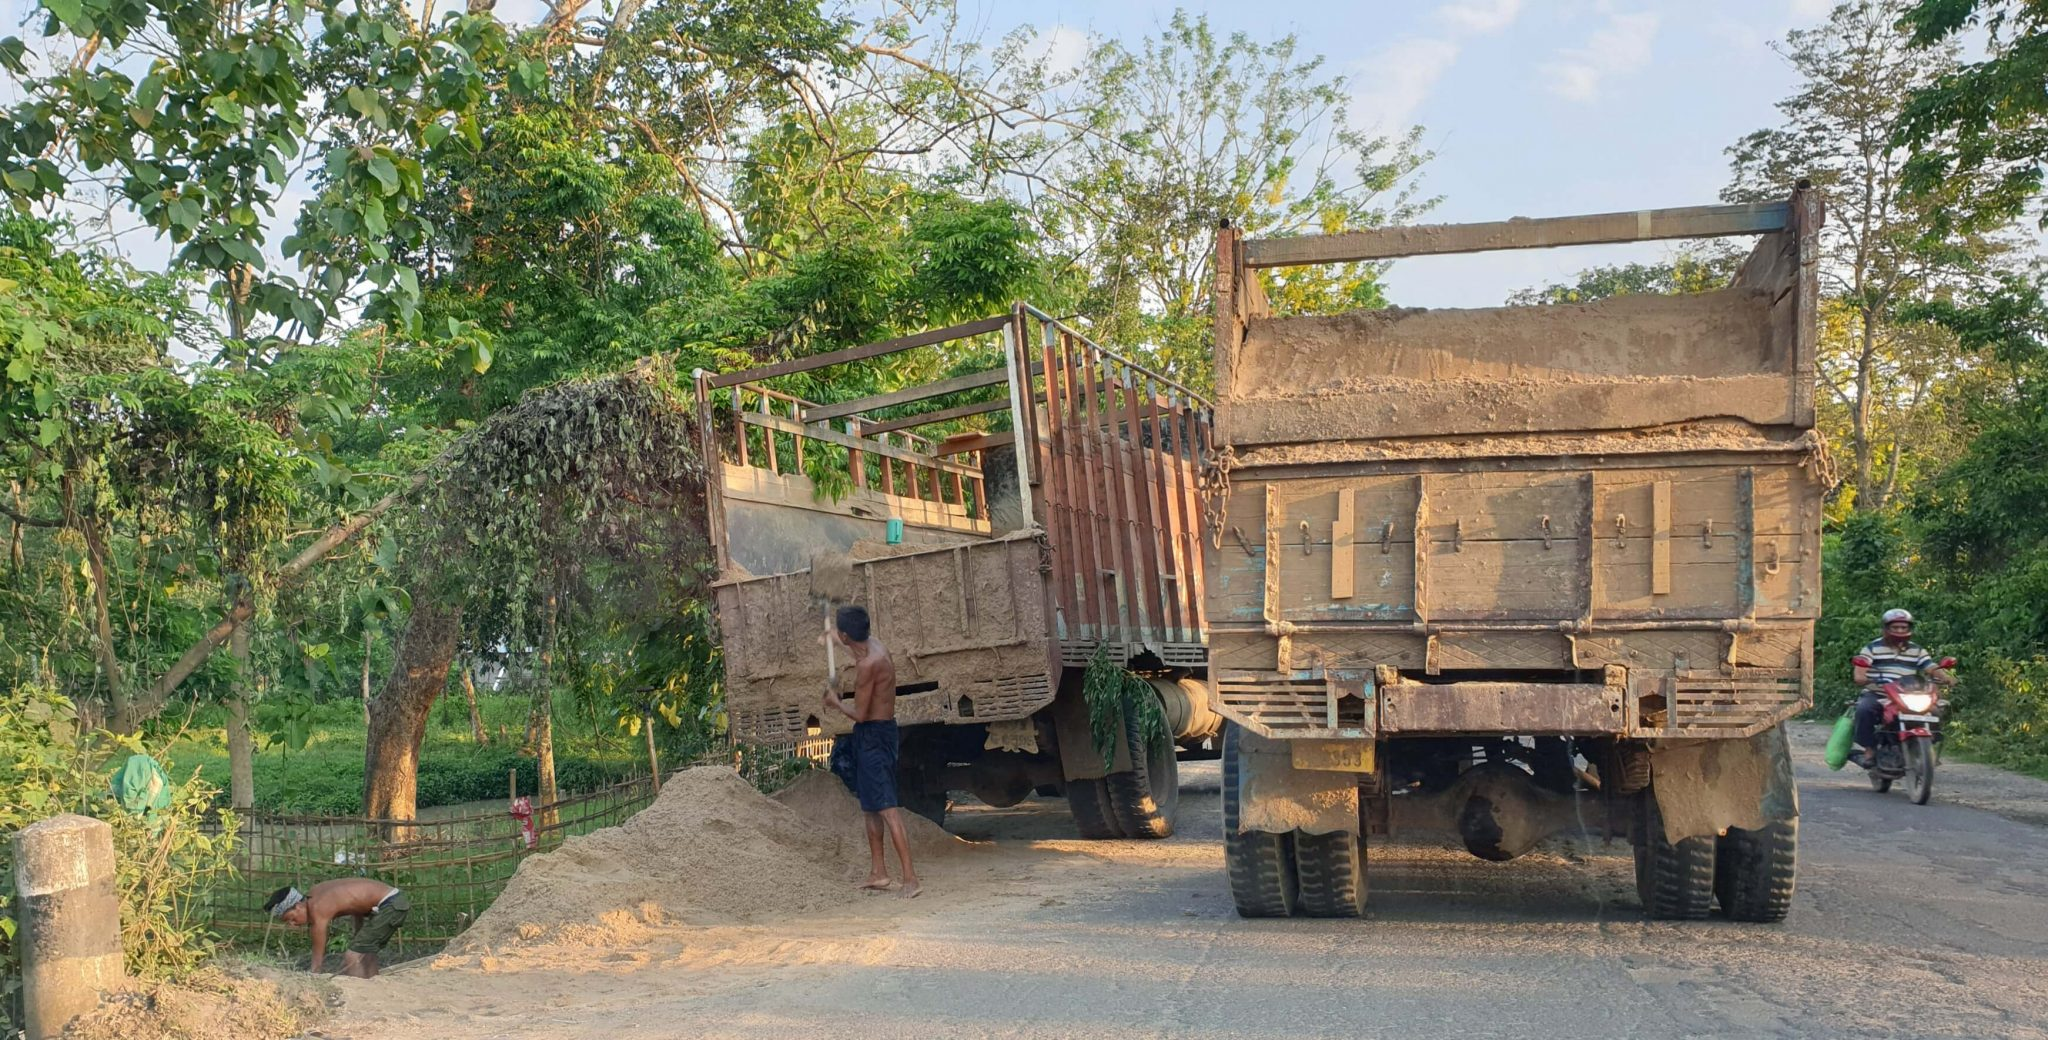 Sand mining goes unregulated in Karbi Anglong with uncontrolled mining from river beds and agricultural lands